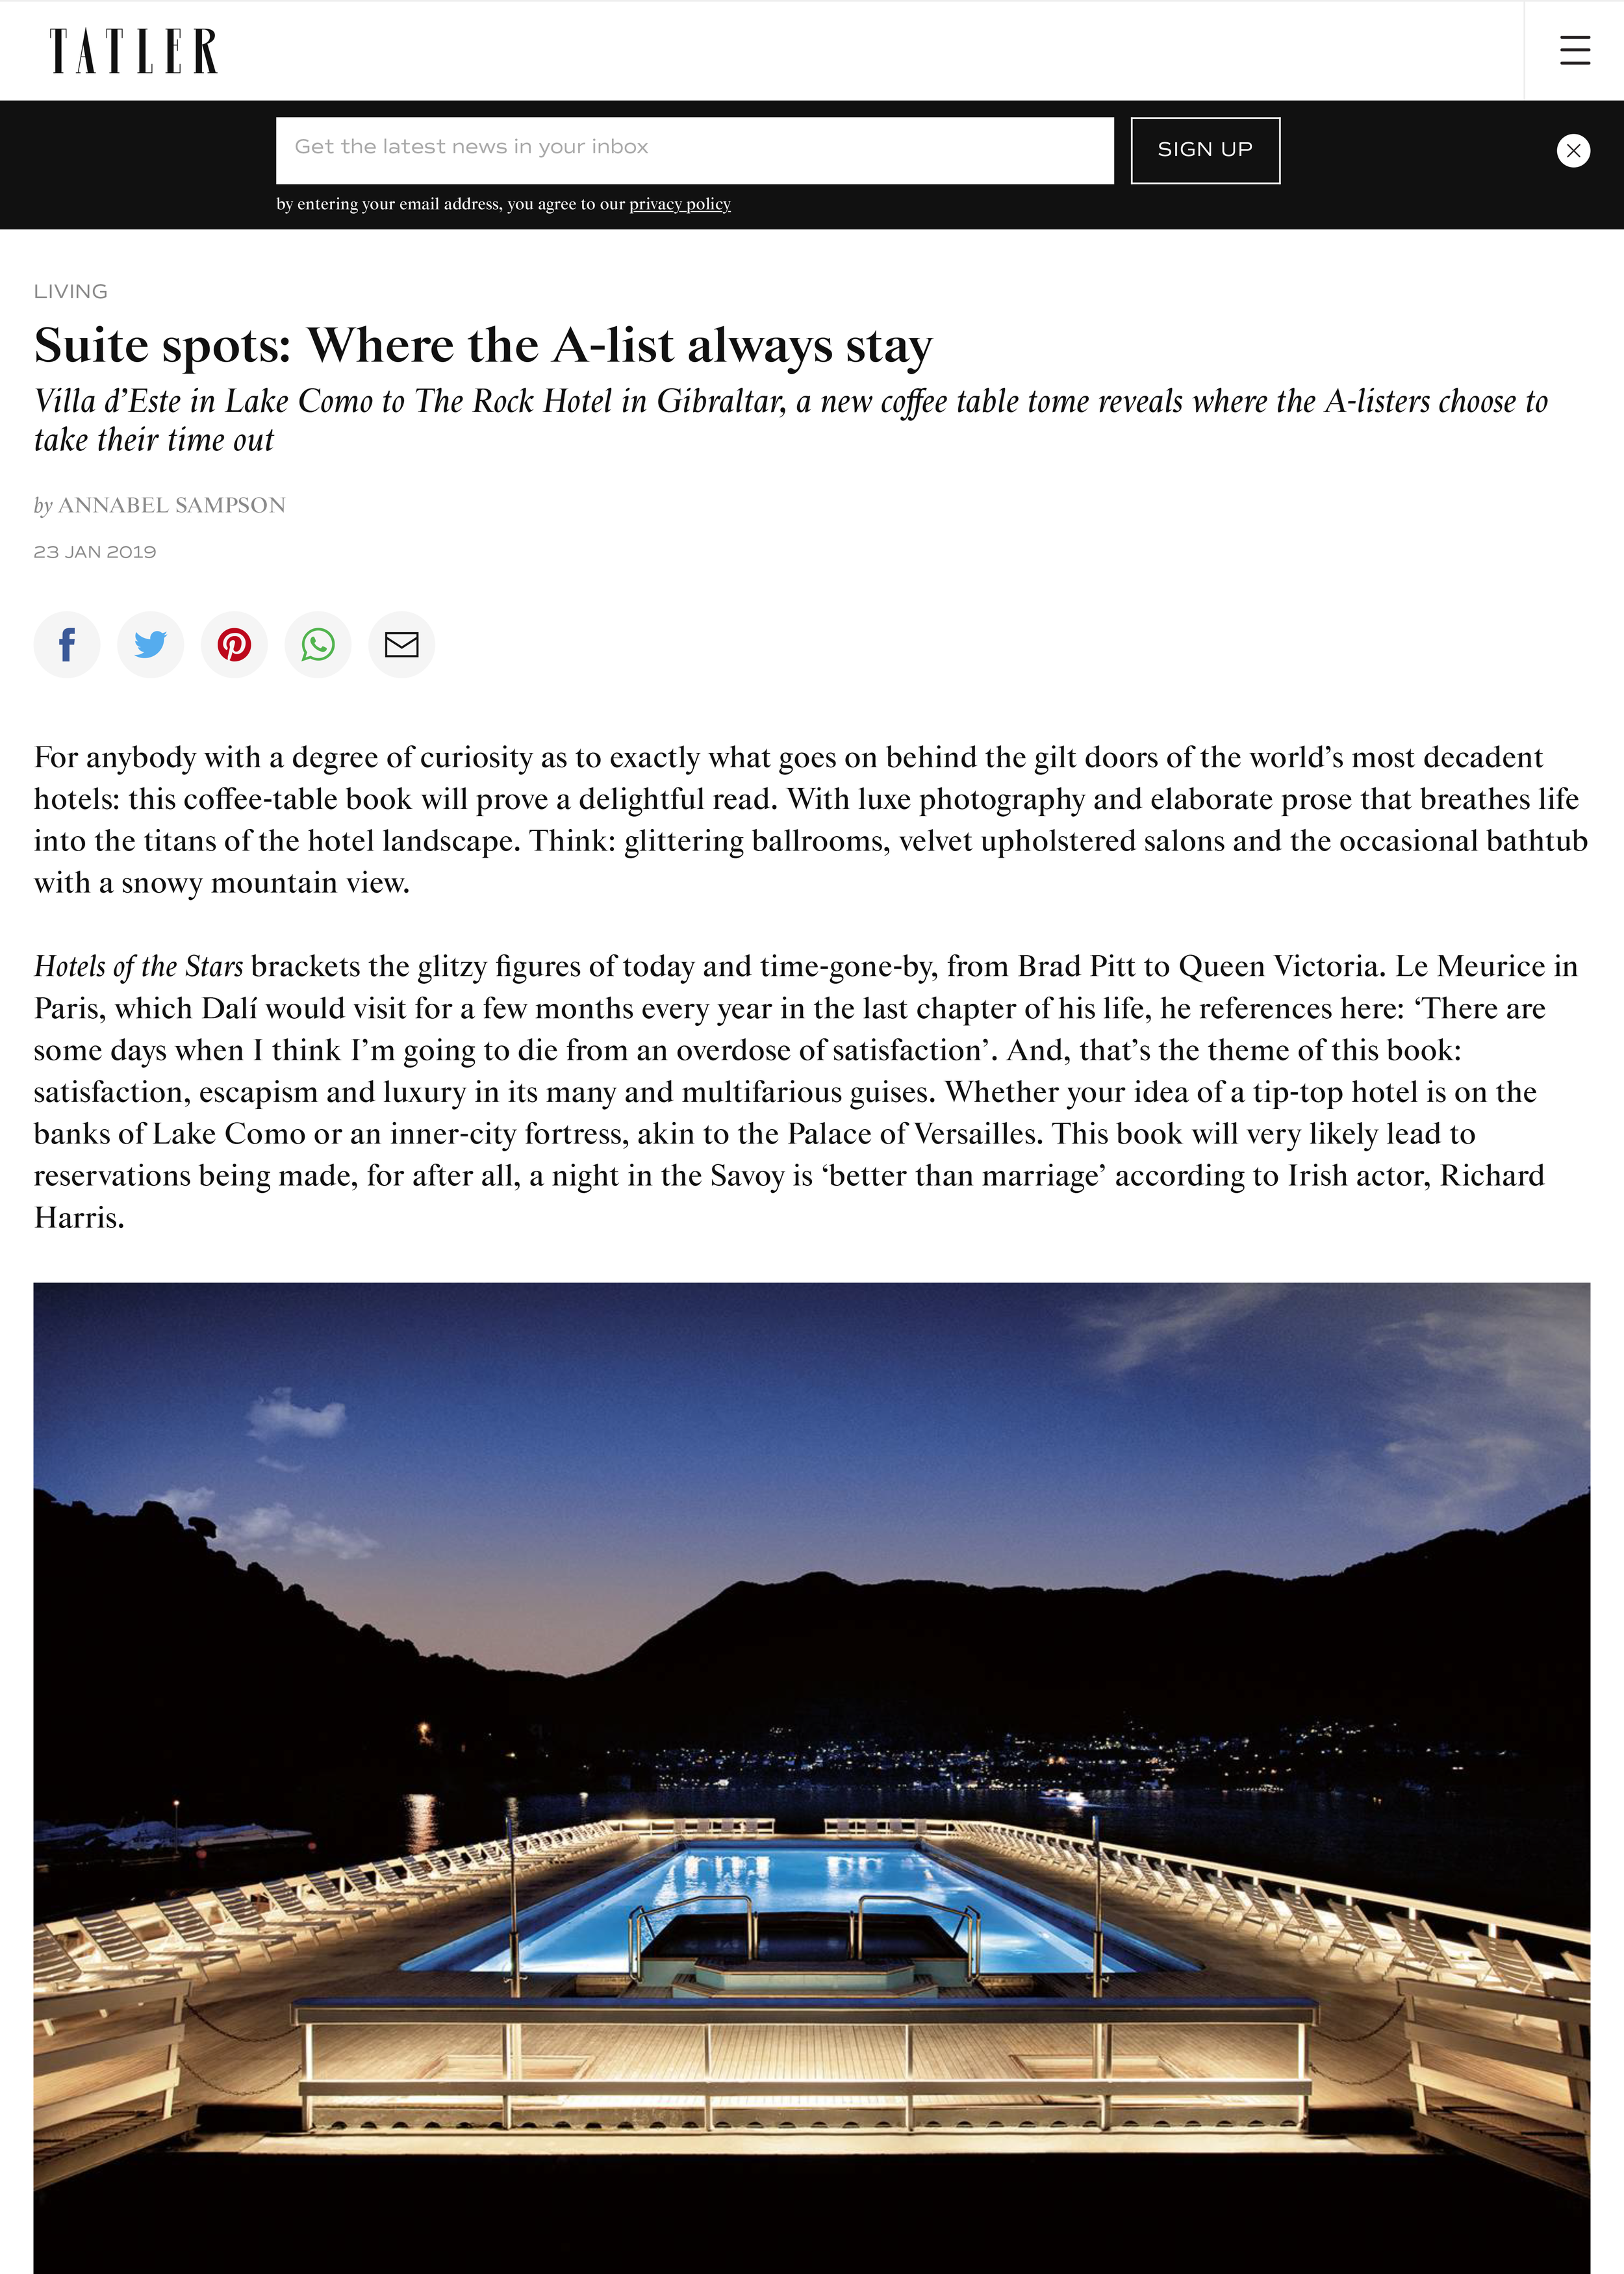 Where the A-list always stay | Tatler-1.png